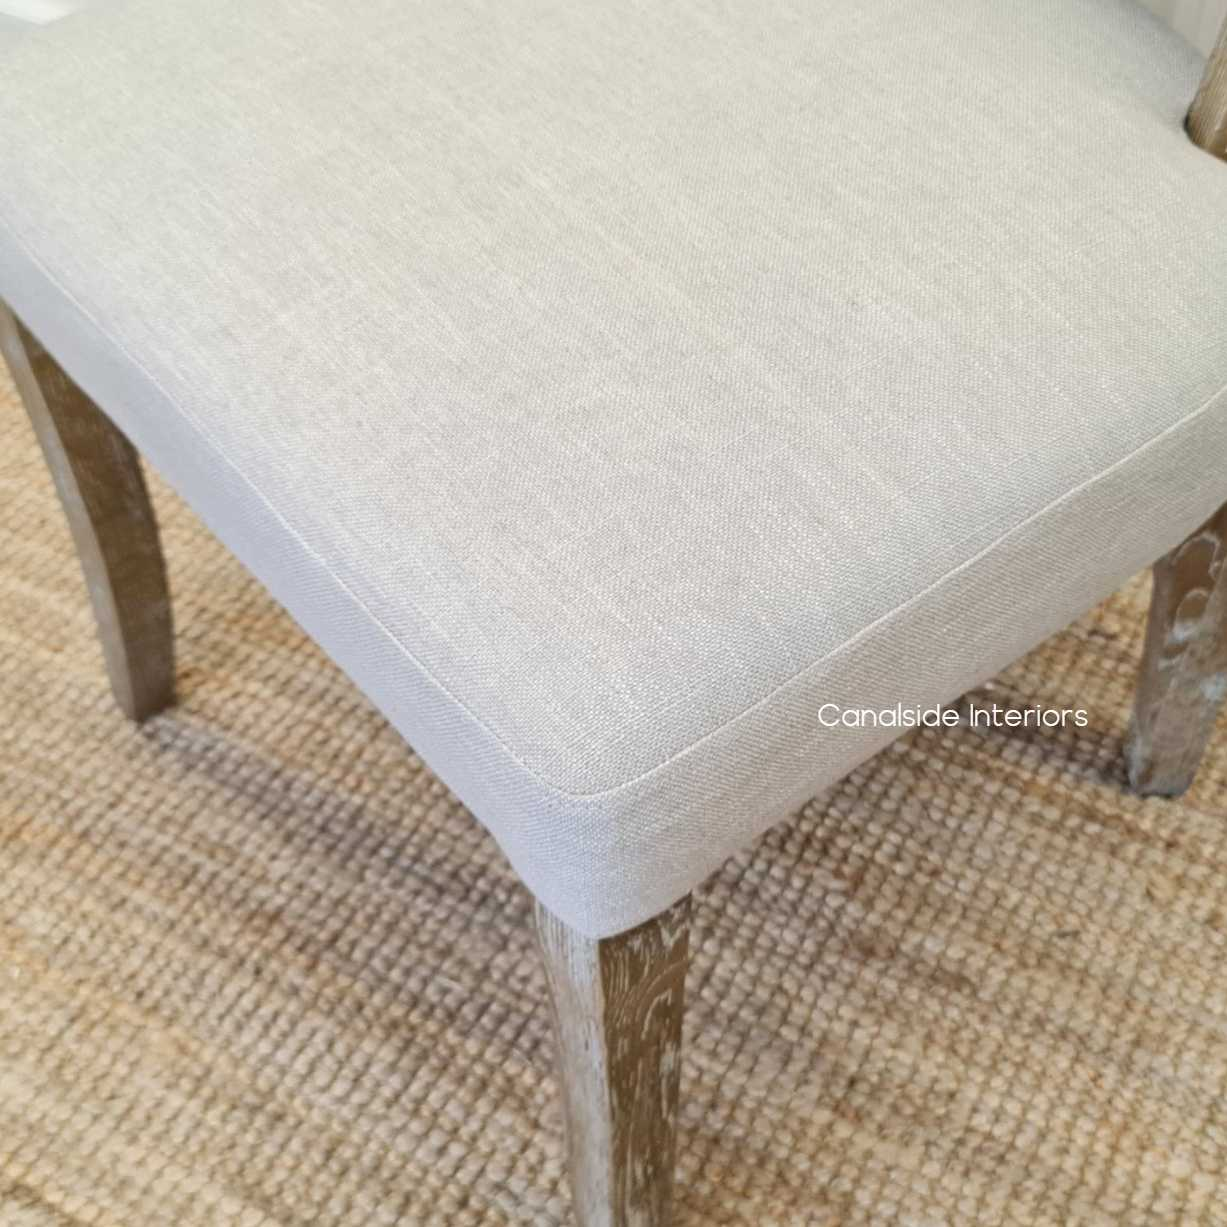 Mimi Dining Chair Cream upholstery weathered oak legs base, CHAIRS, HAMPTONS Style, PLANTATION Style, CHAIRS Dining Manny Dining Chair